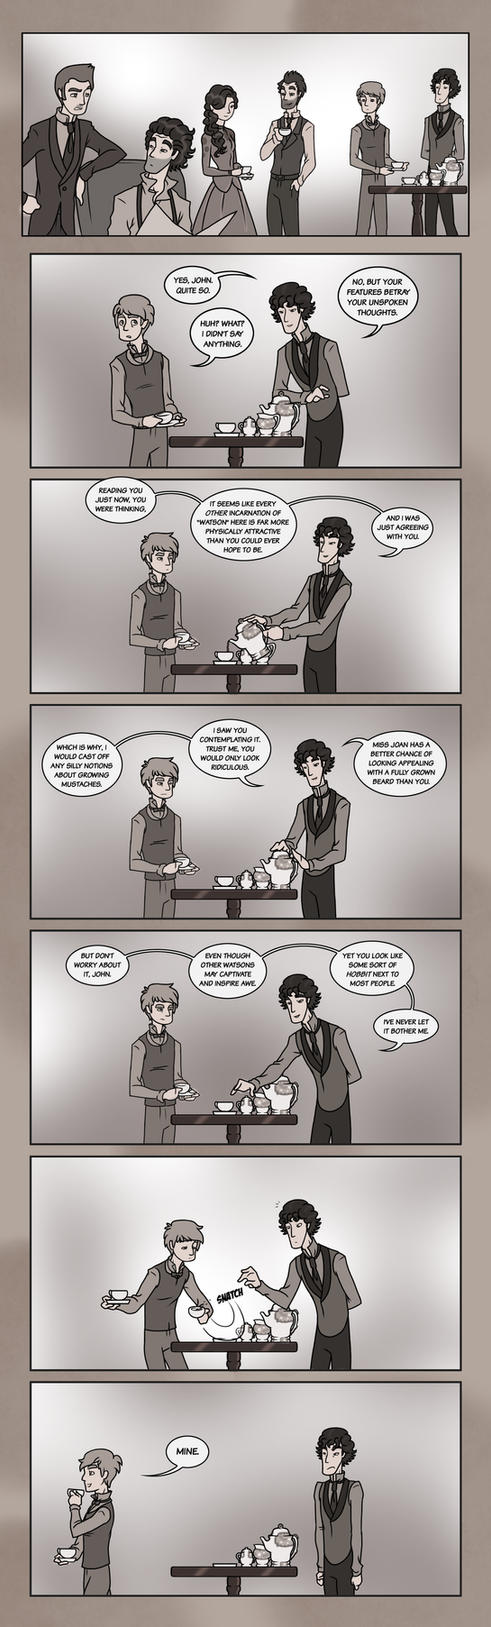 Elementary/Sherlock Special: Part Eight by maryfgr23